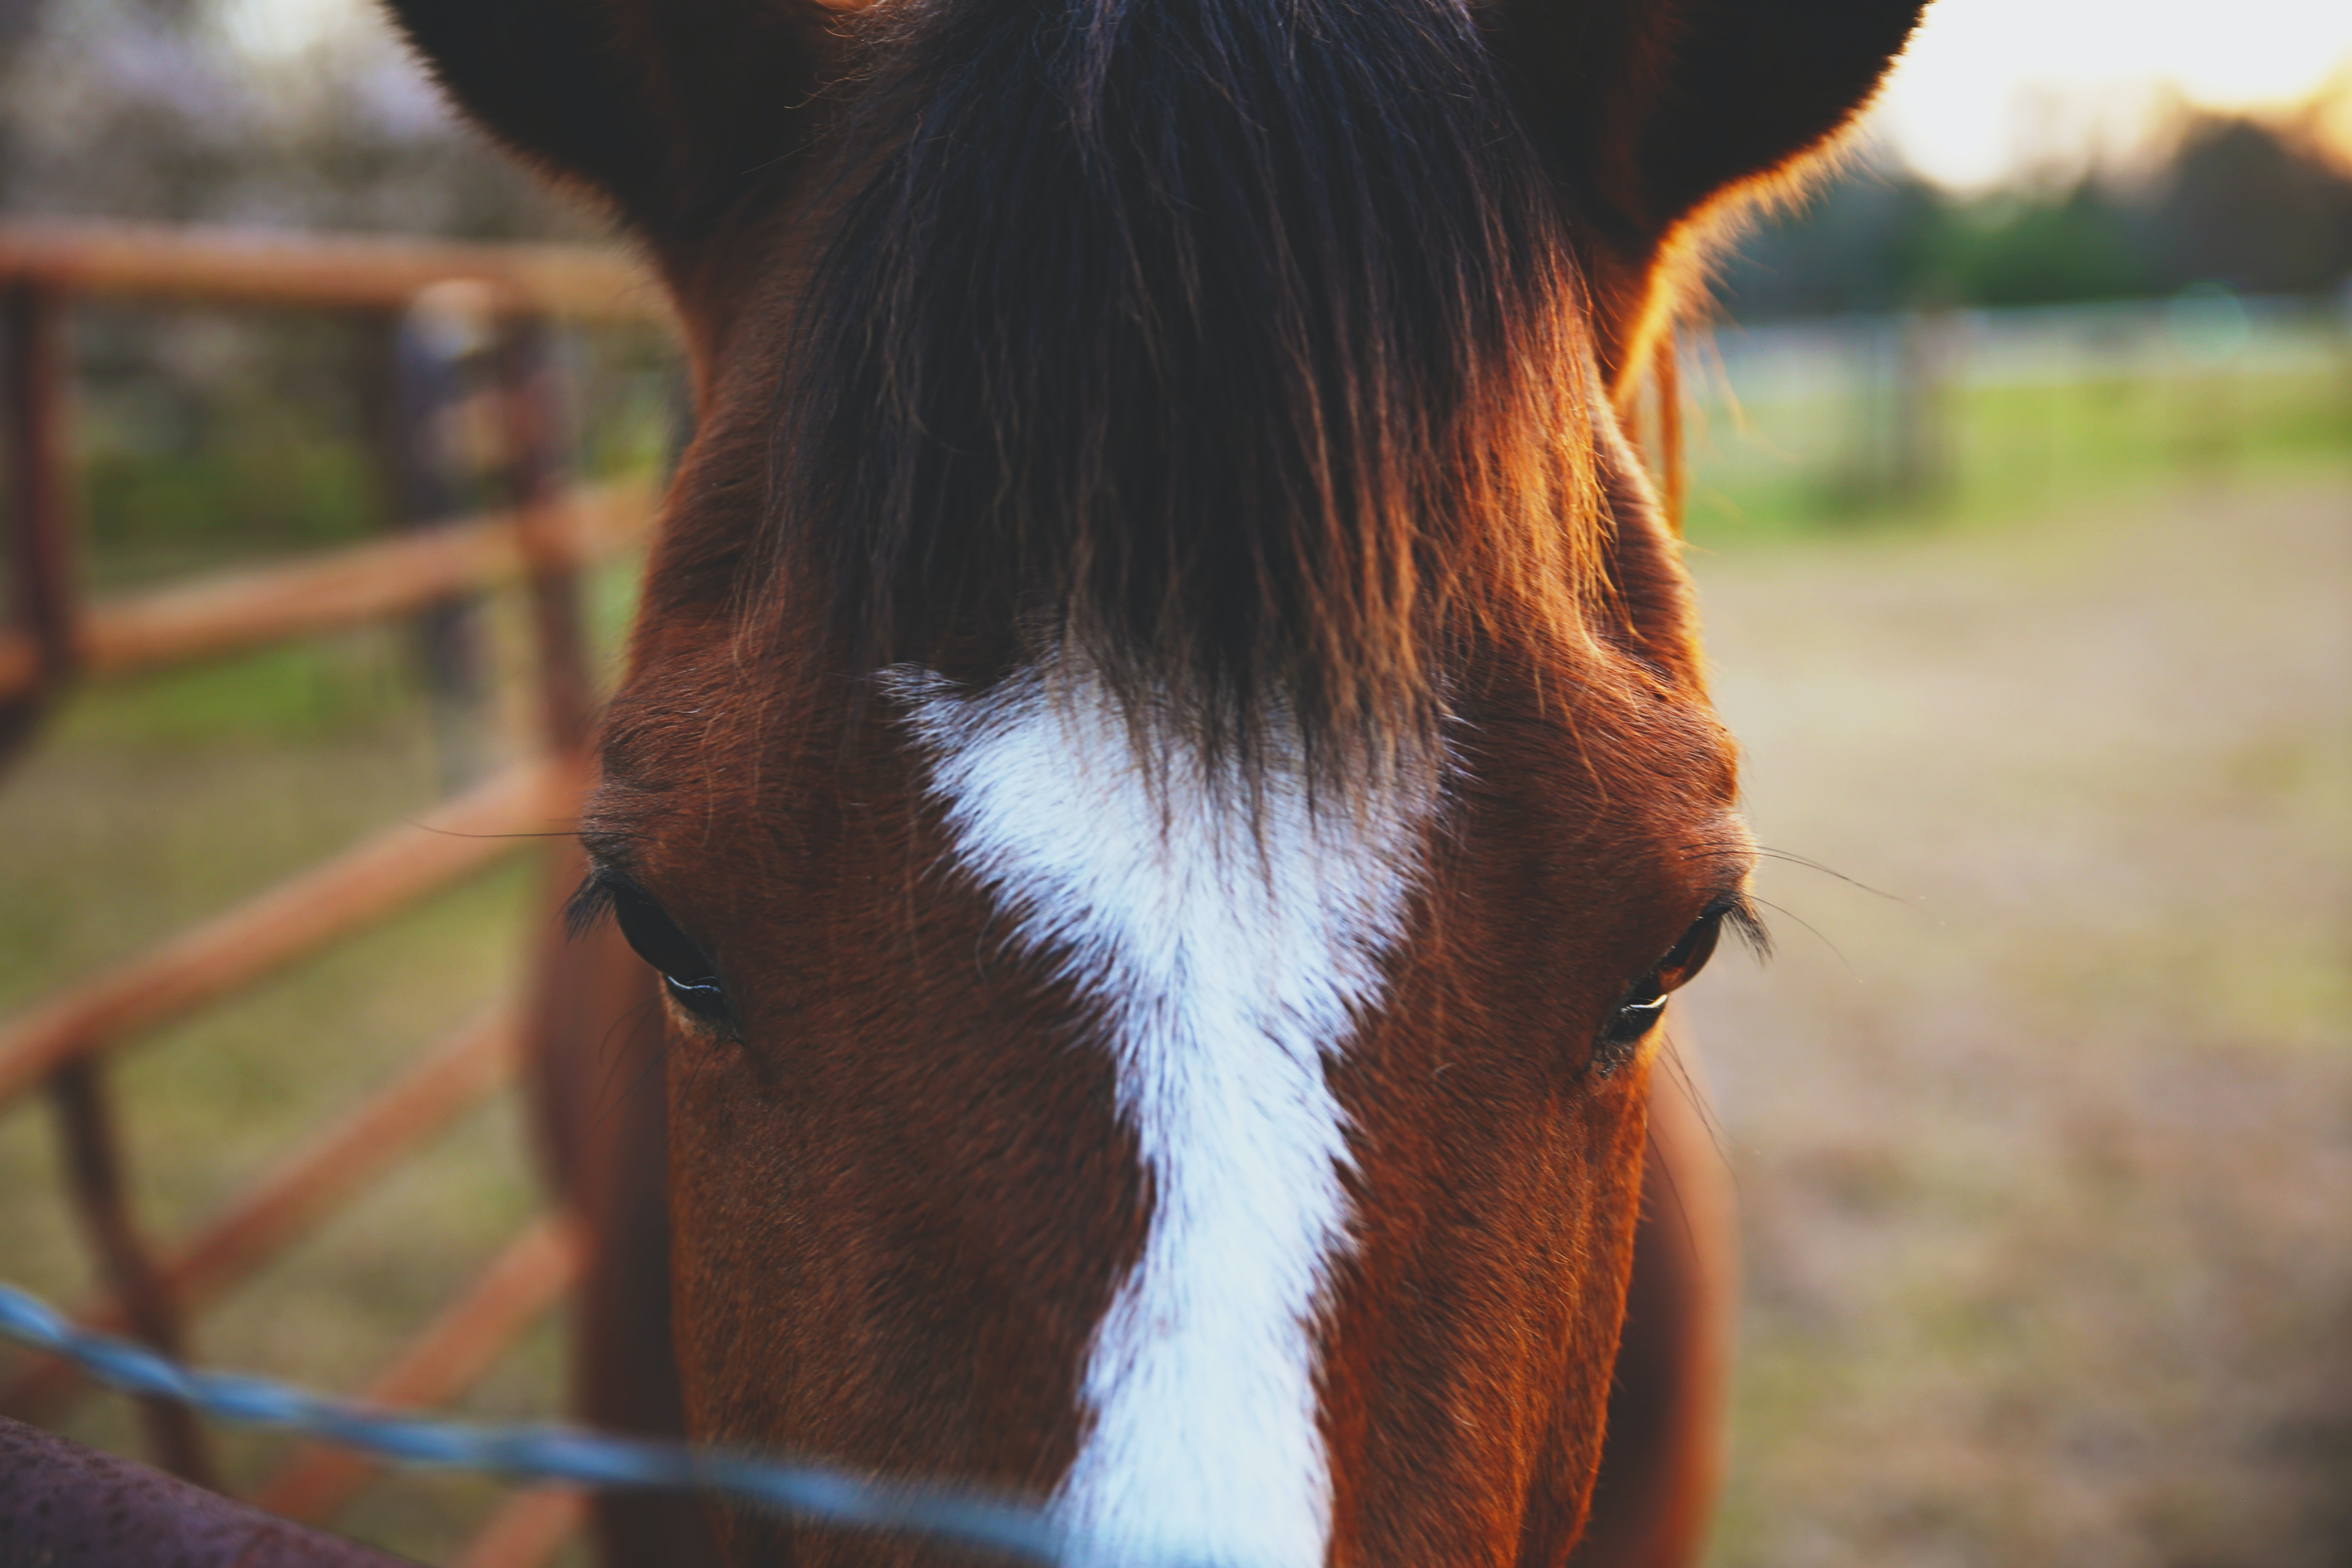 closeup photo of brown and white horse